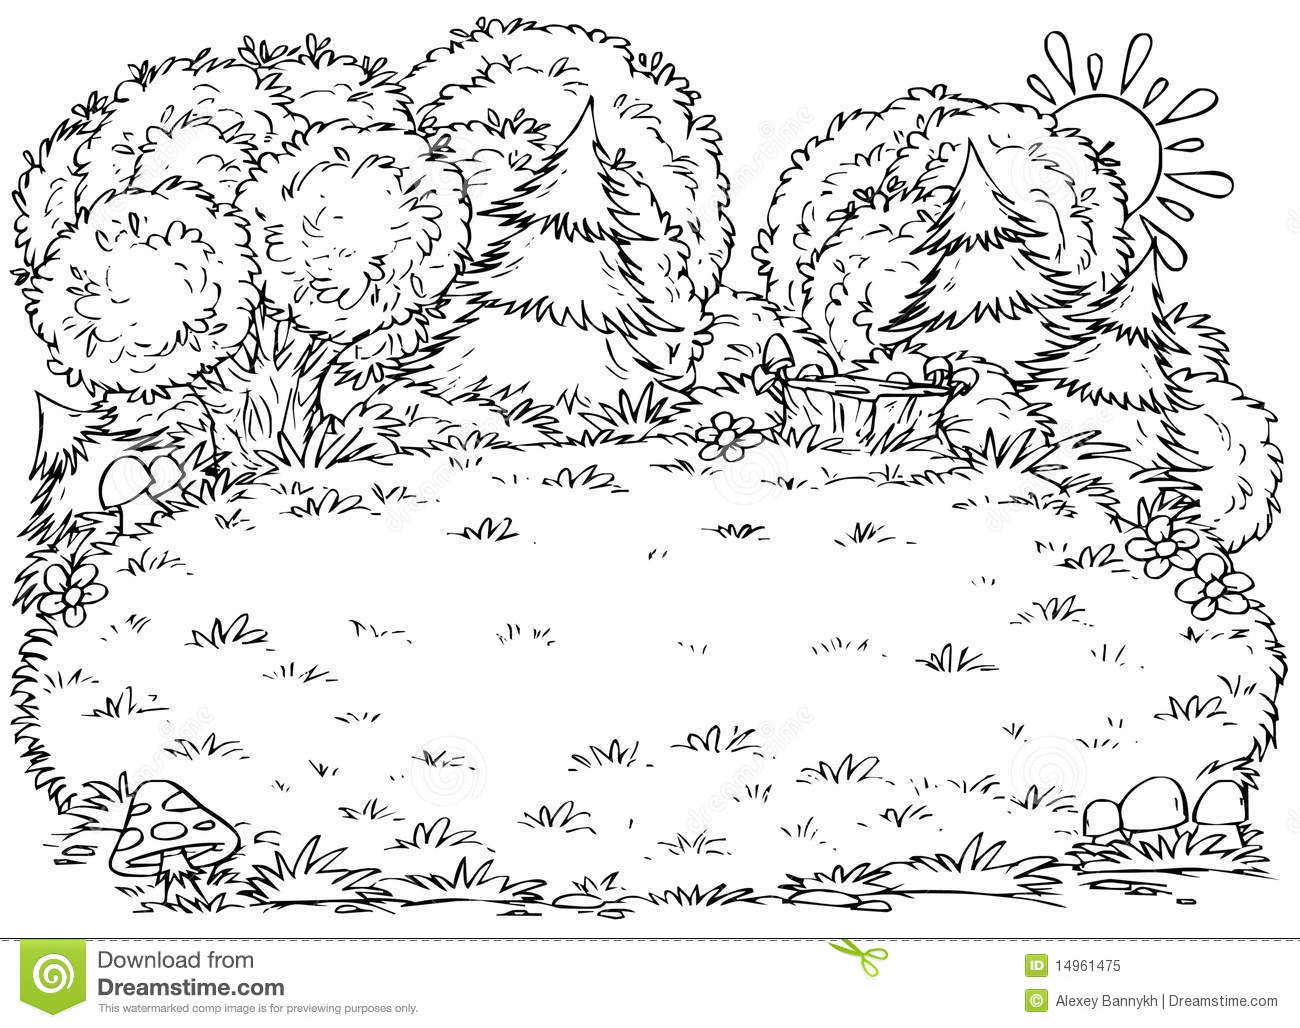 Forest glade stock illustration. Image of drawing, white